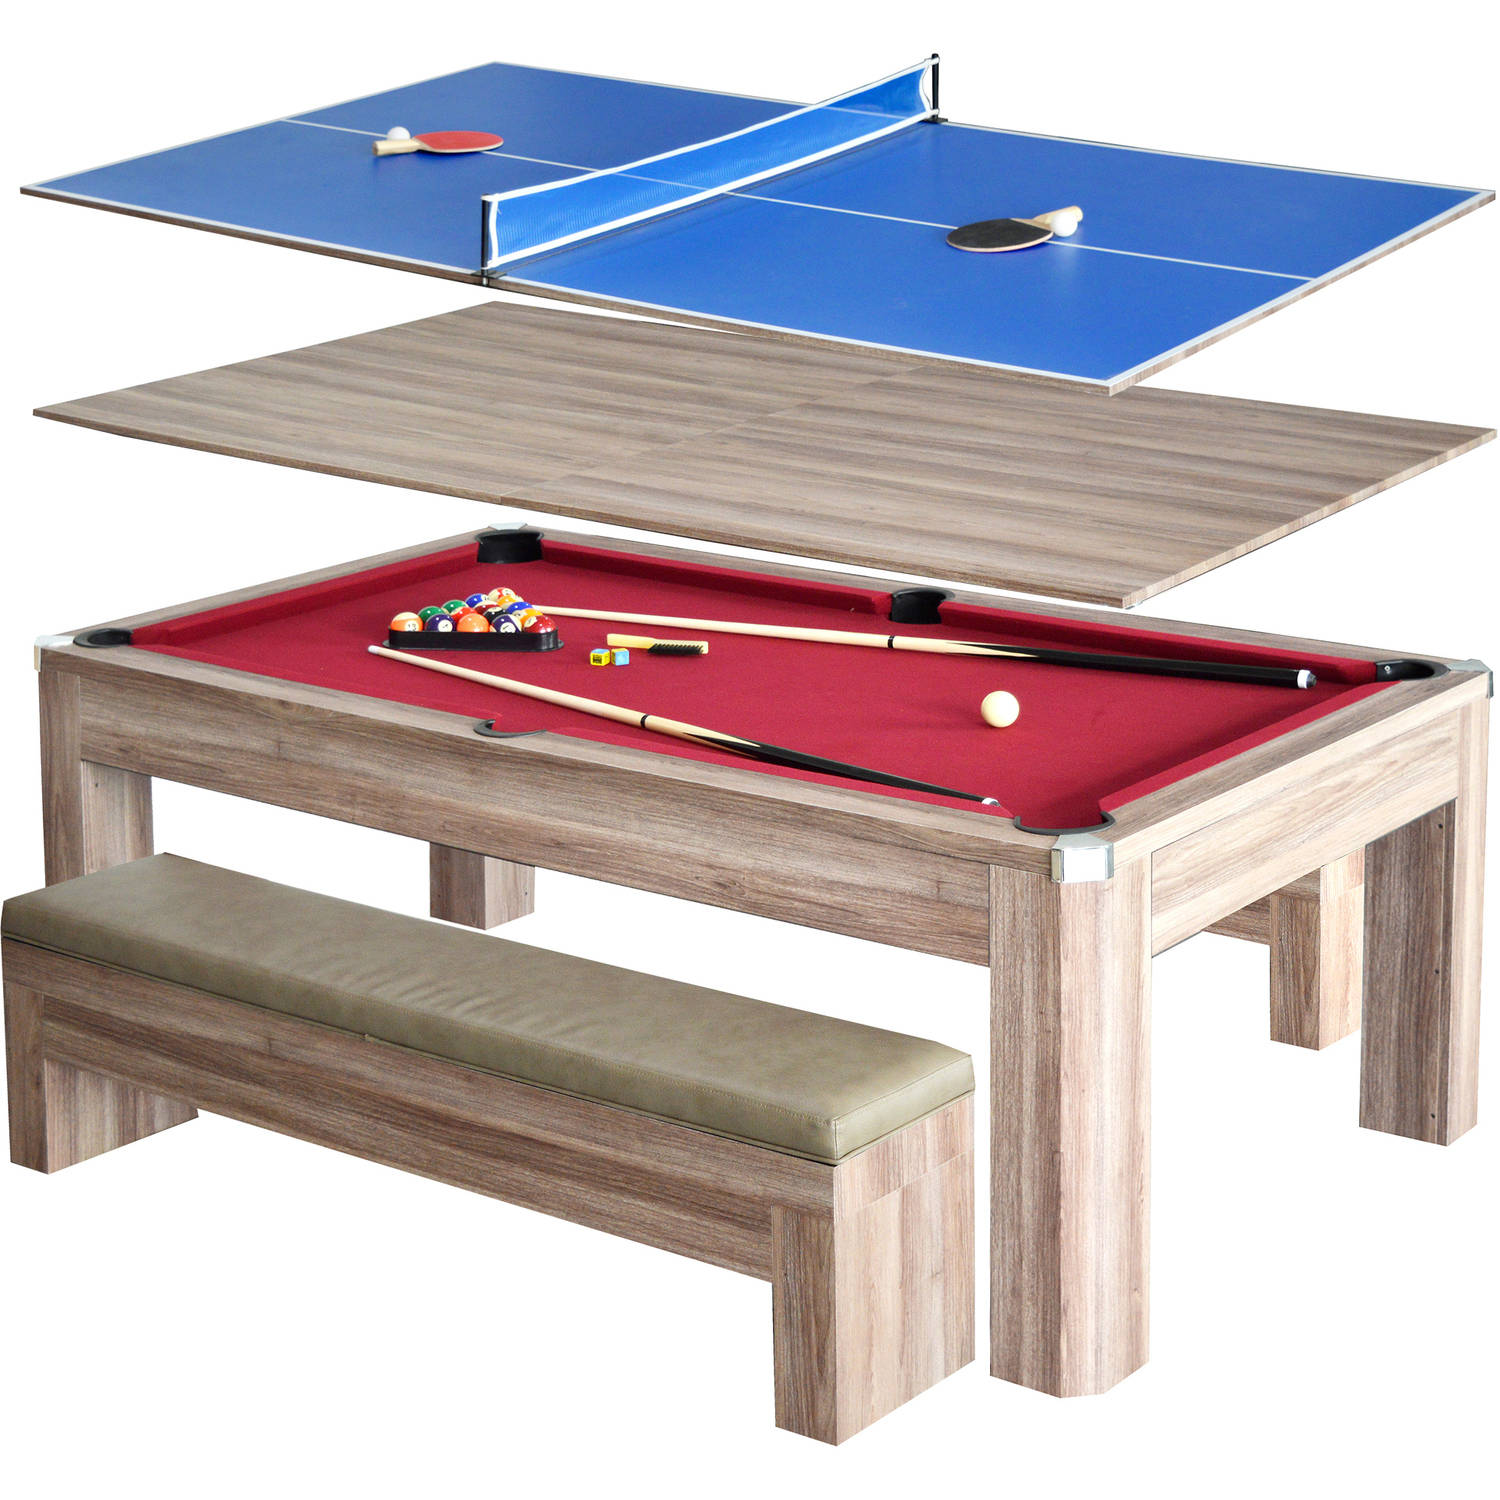 Triumph Sports USA Pool Table With LED Light Walmartcom - Red top pool table